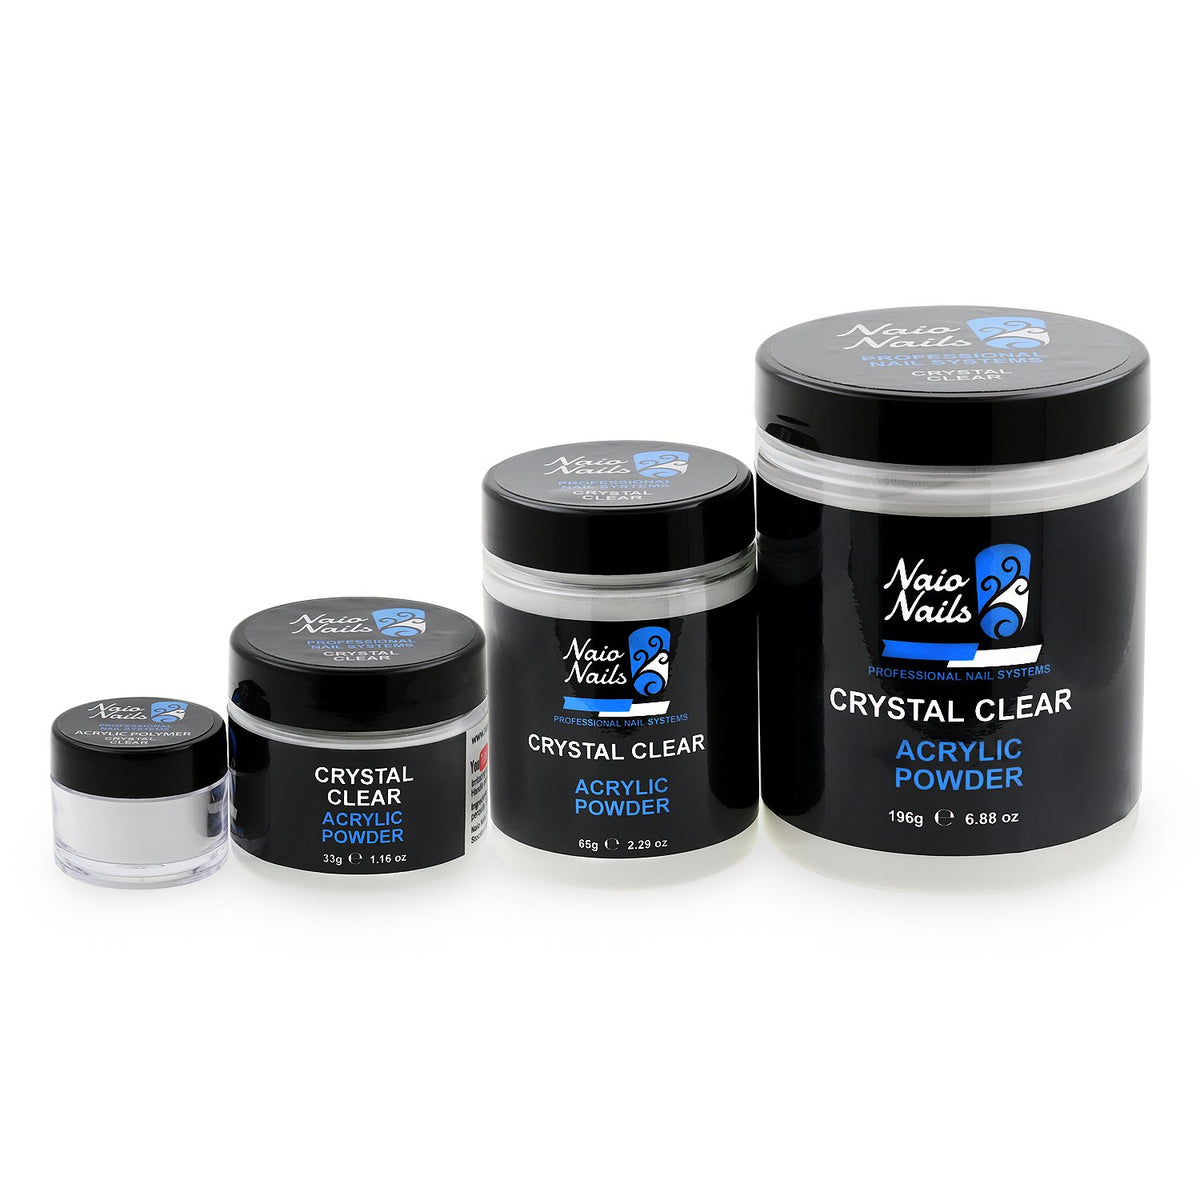 Clear Acrylic Powder 195g Naio Nails